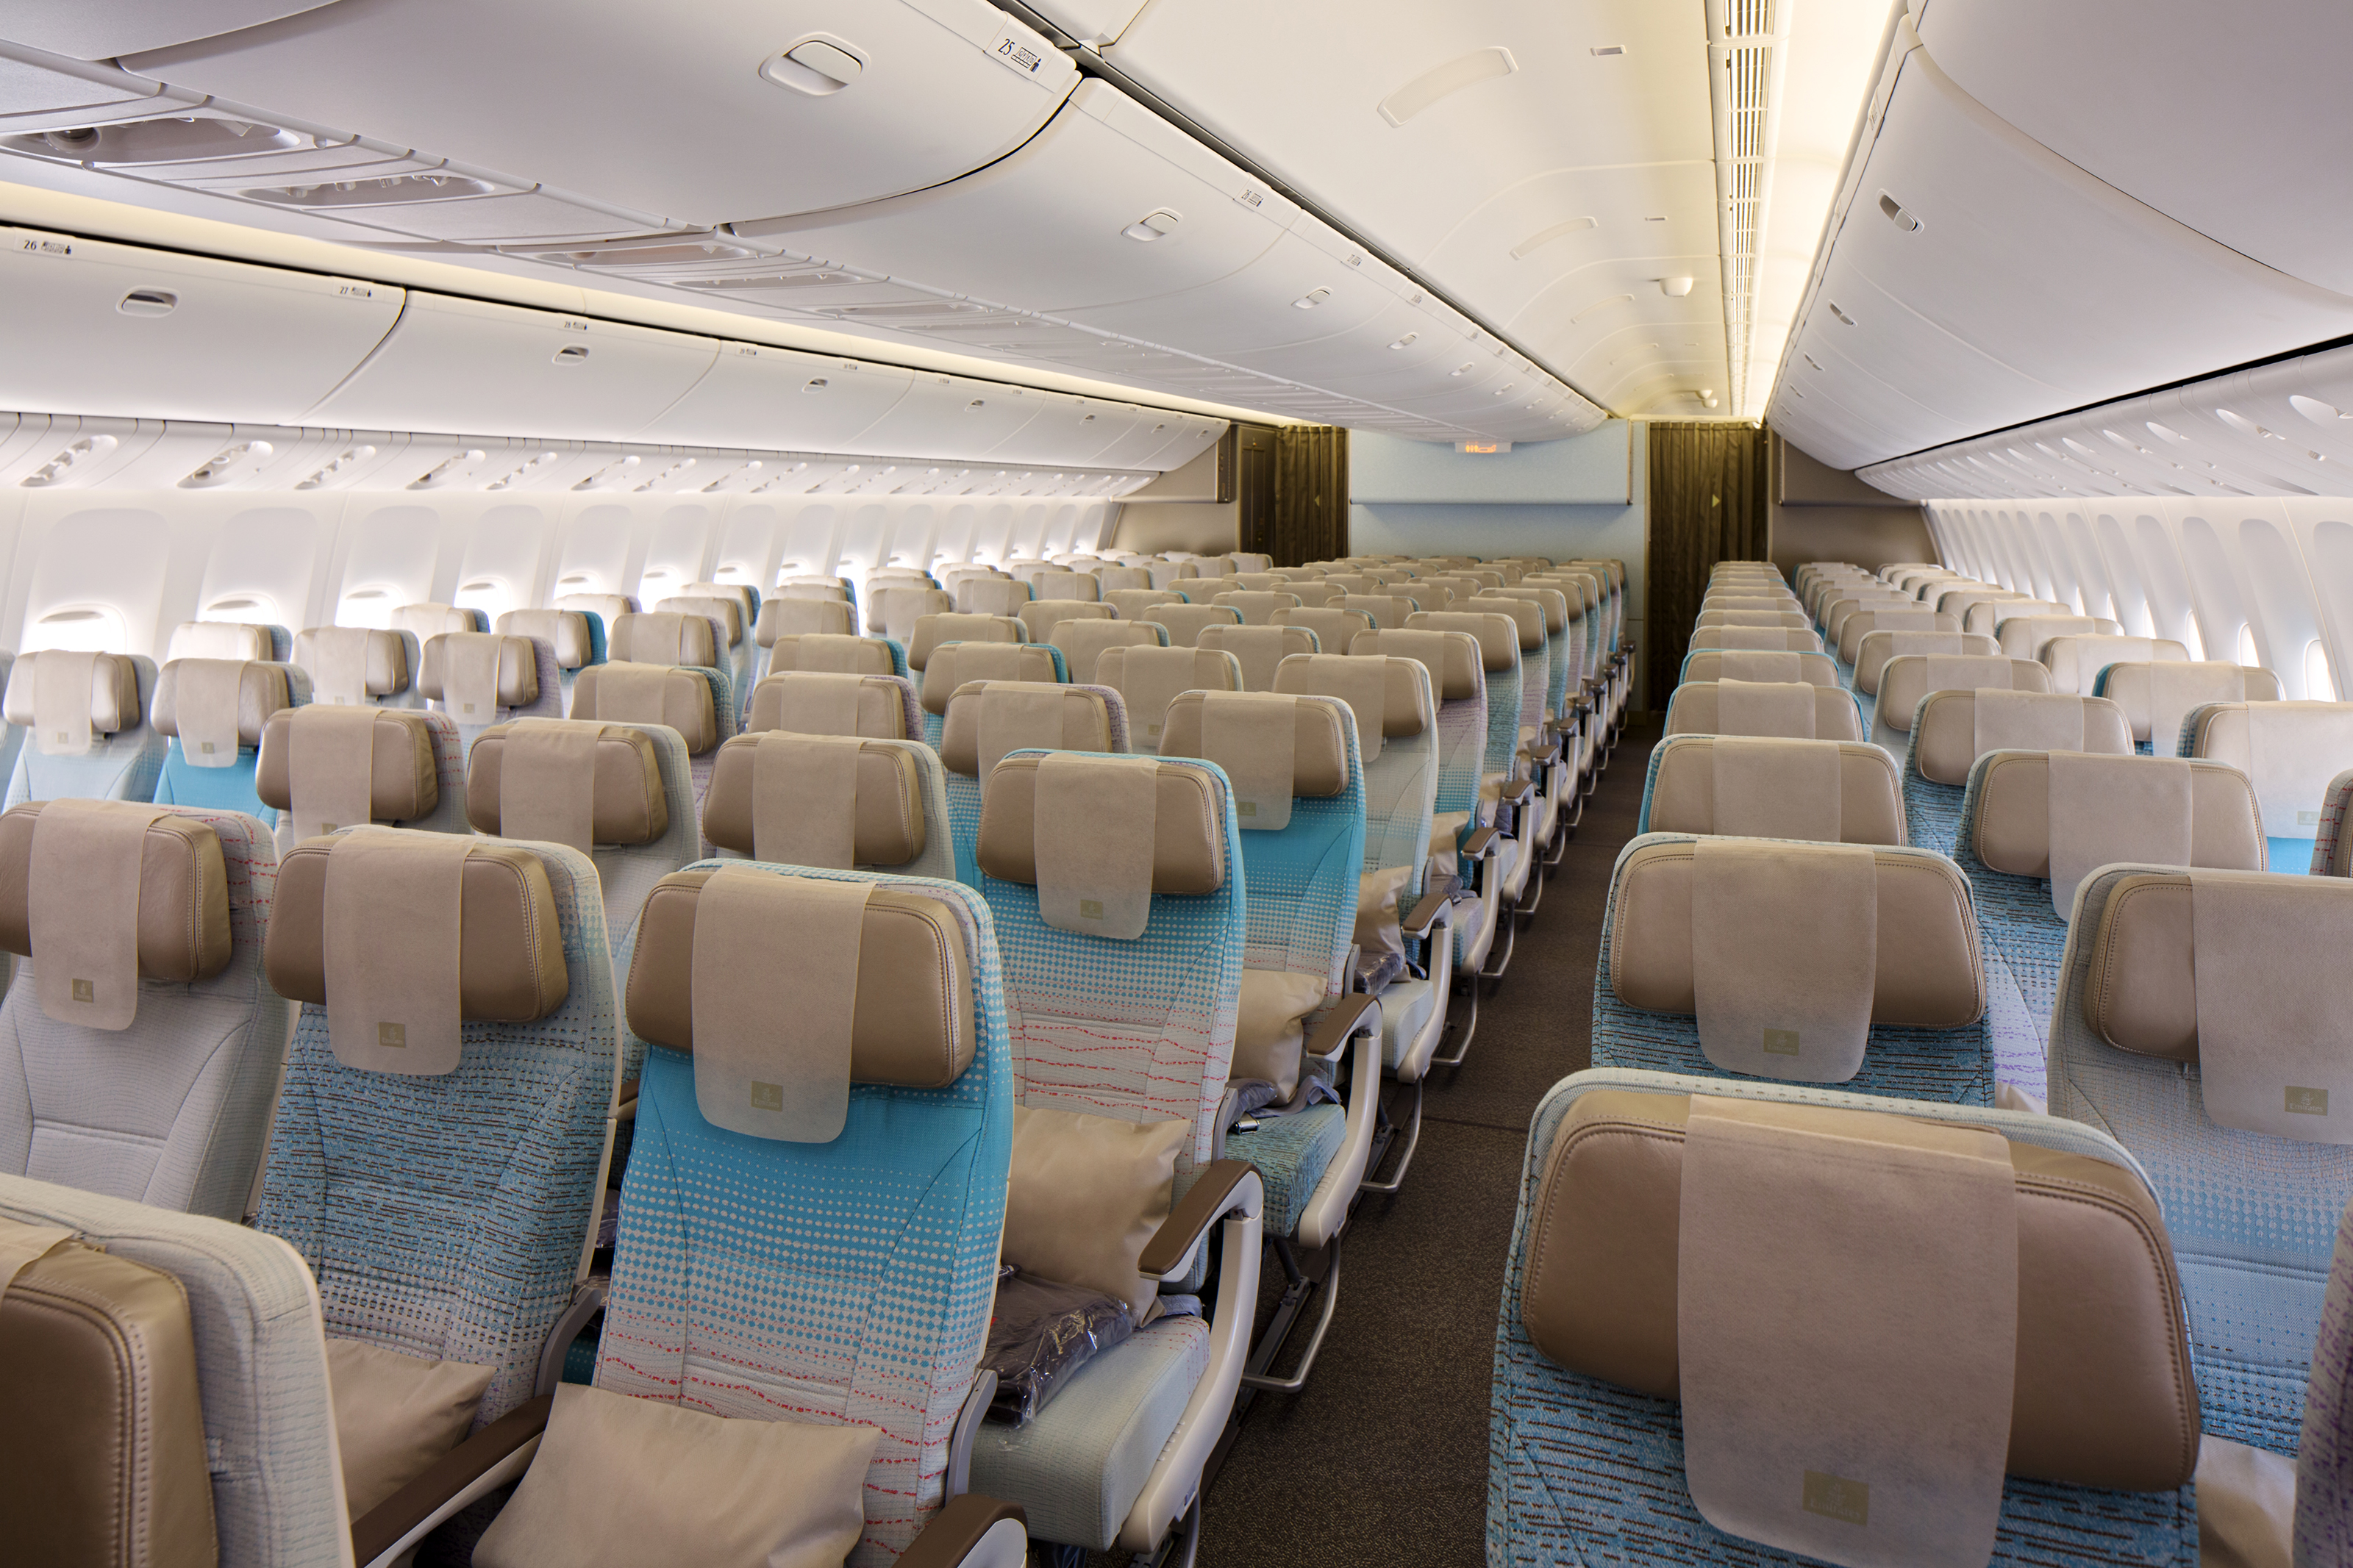 The Economy Class Cabin Download